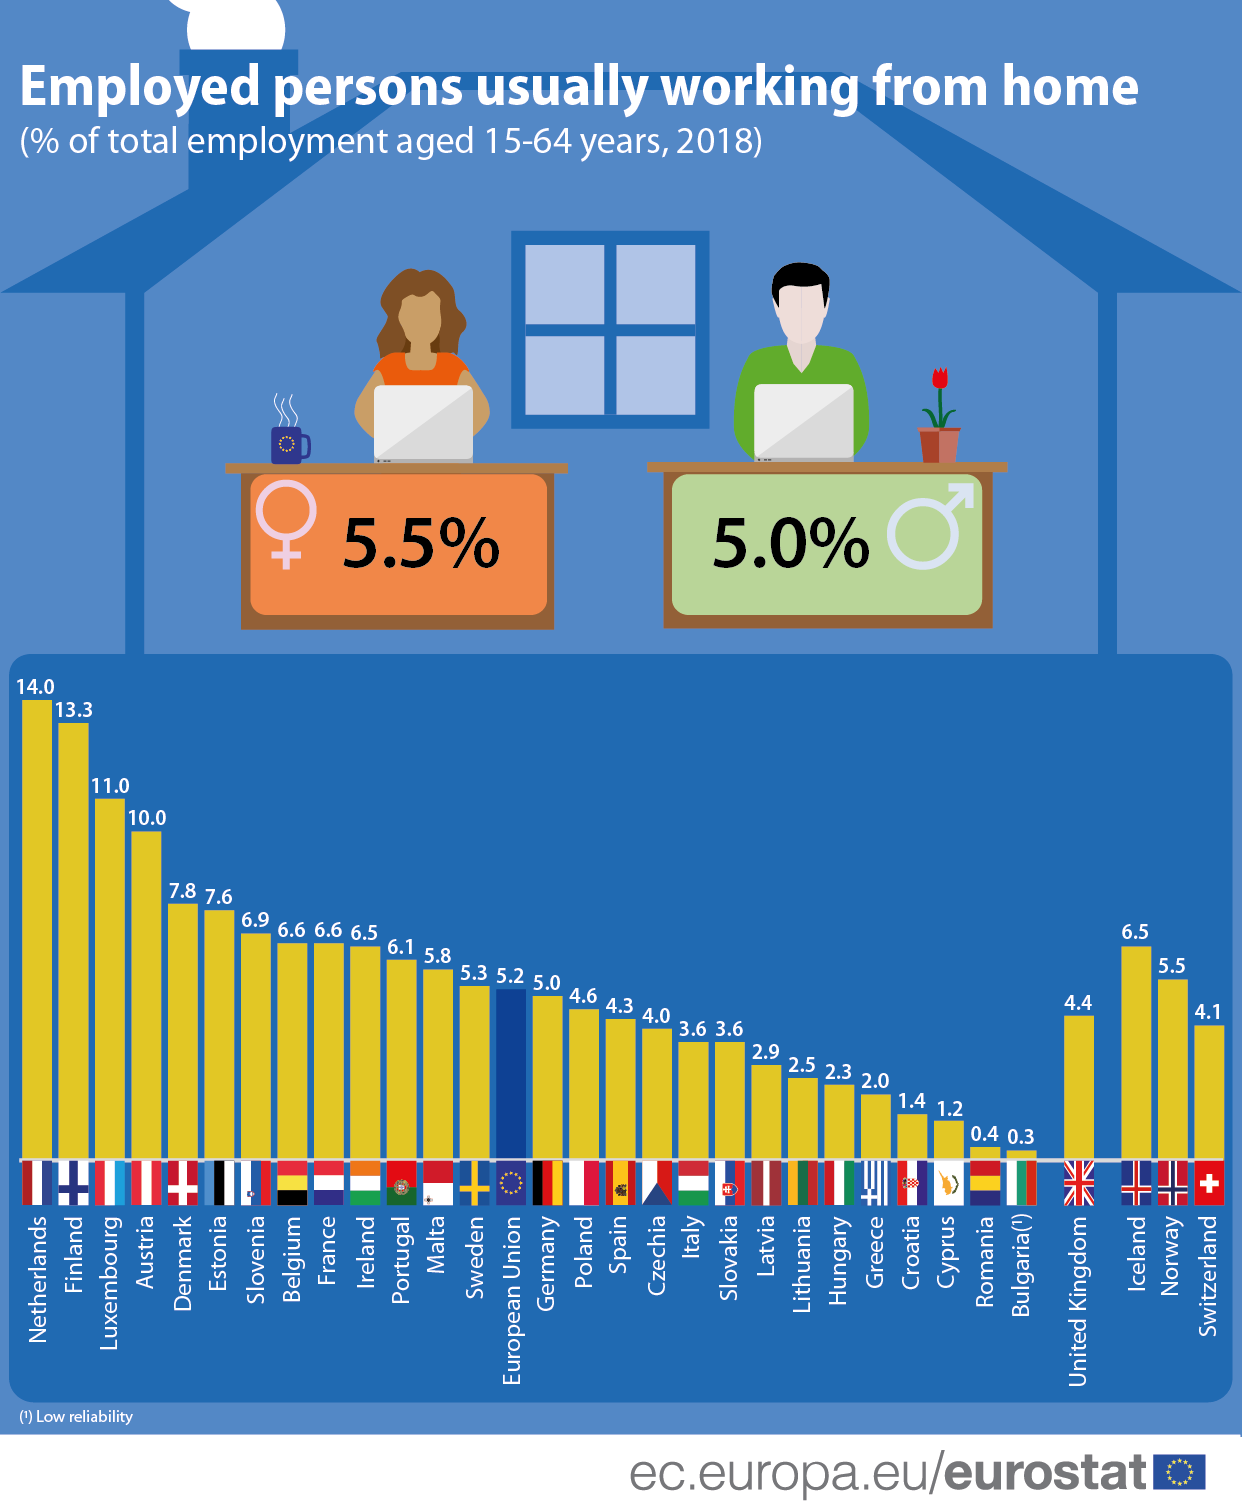 An infographic showing which countries have the most people working from home in the EU.